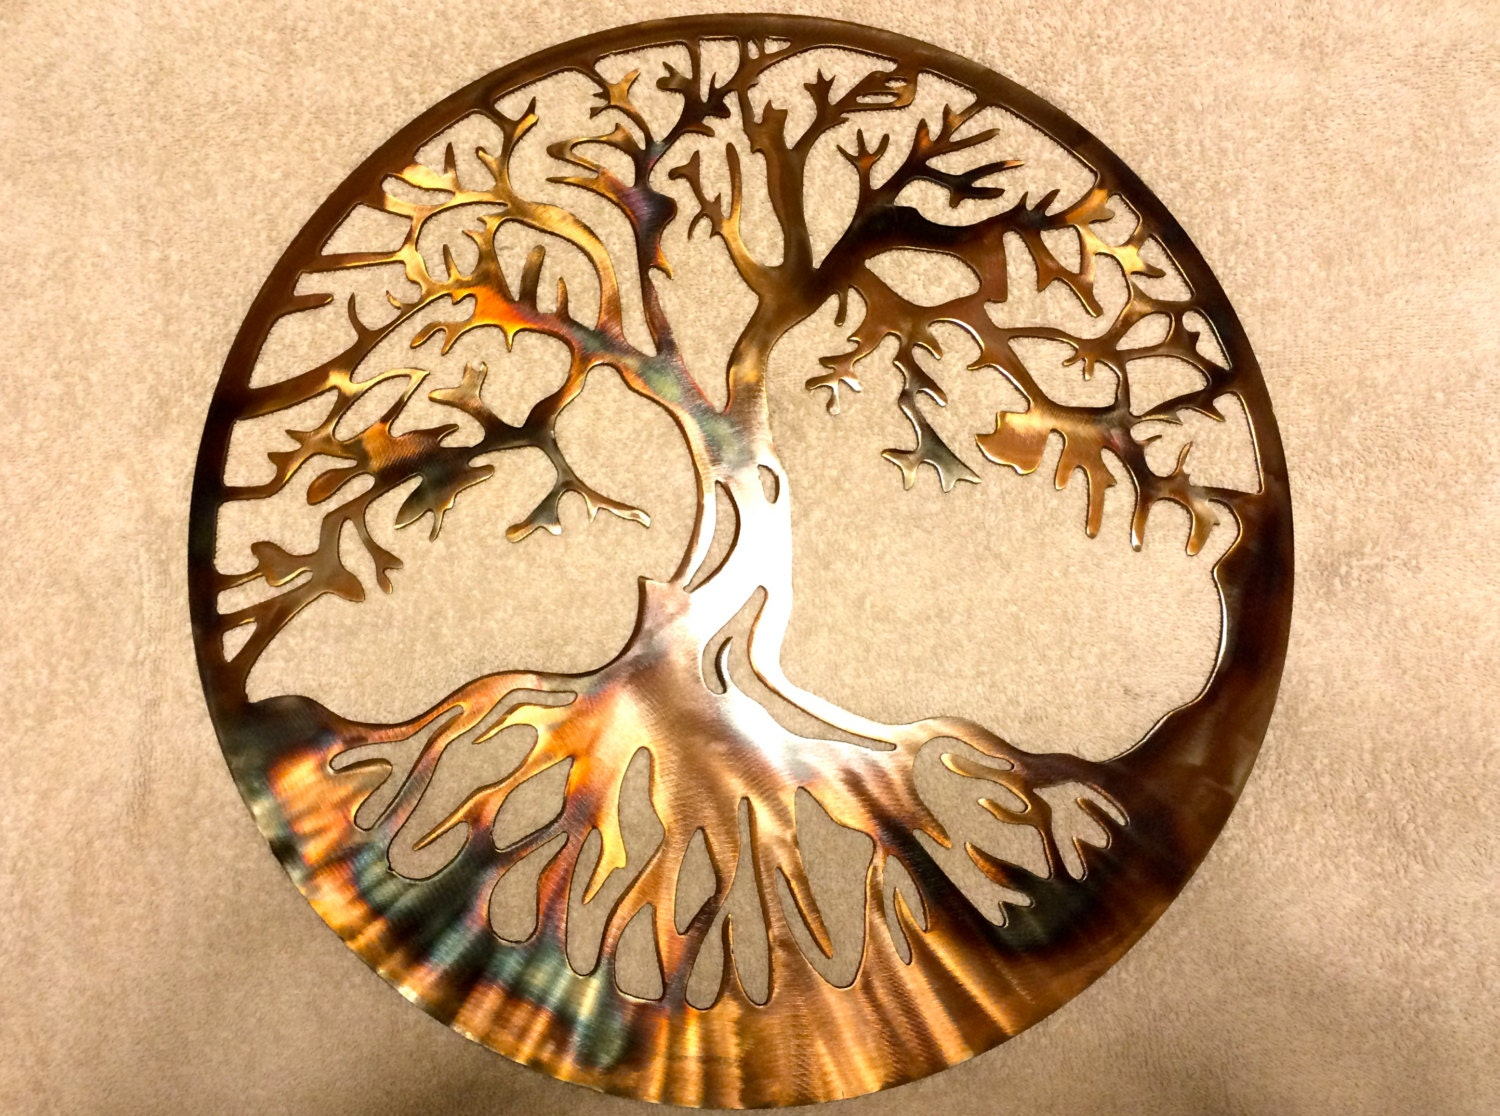 Plasma Cut Metal Wall Art - Elitflat